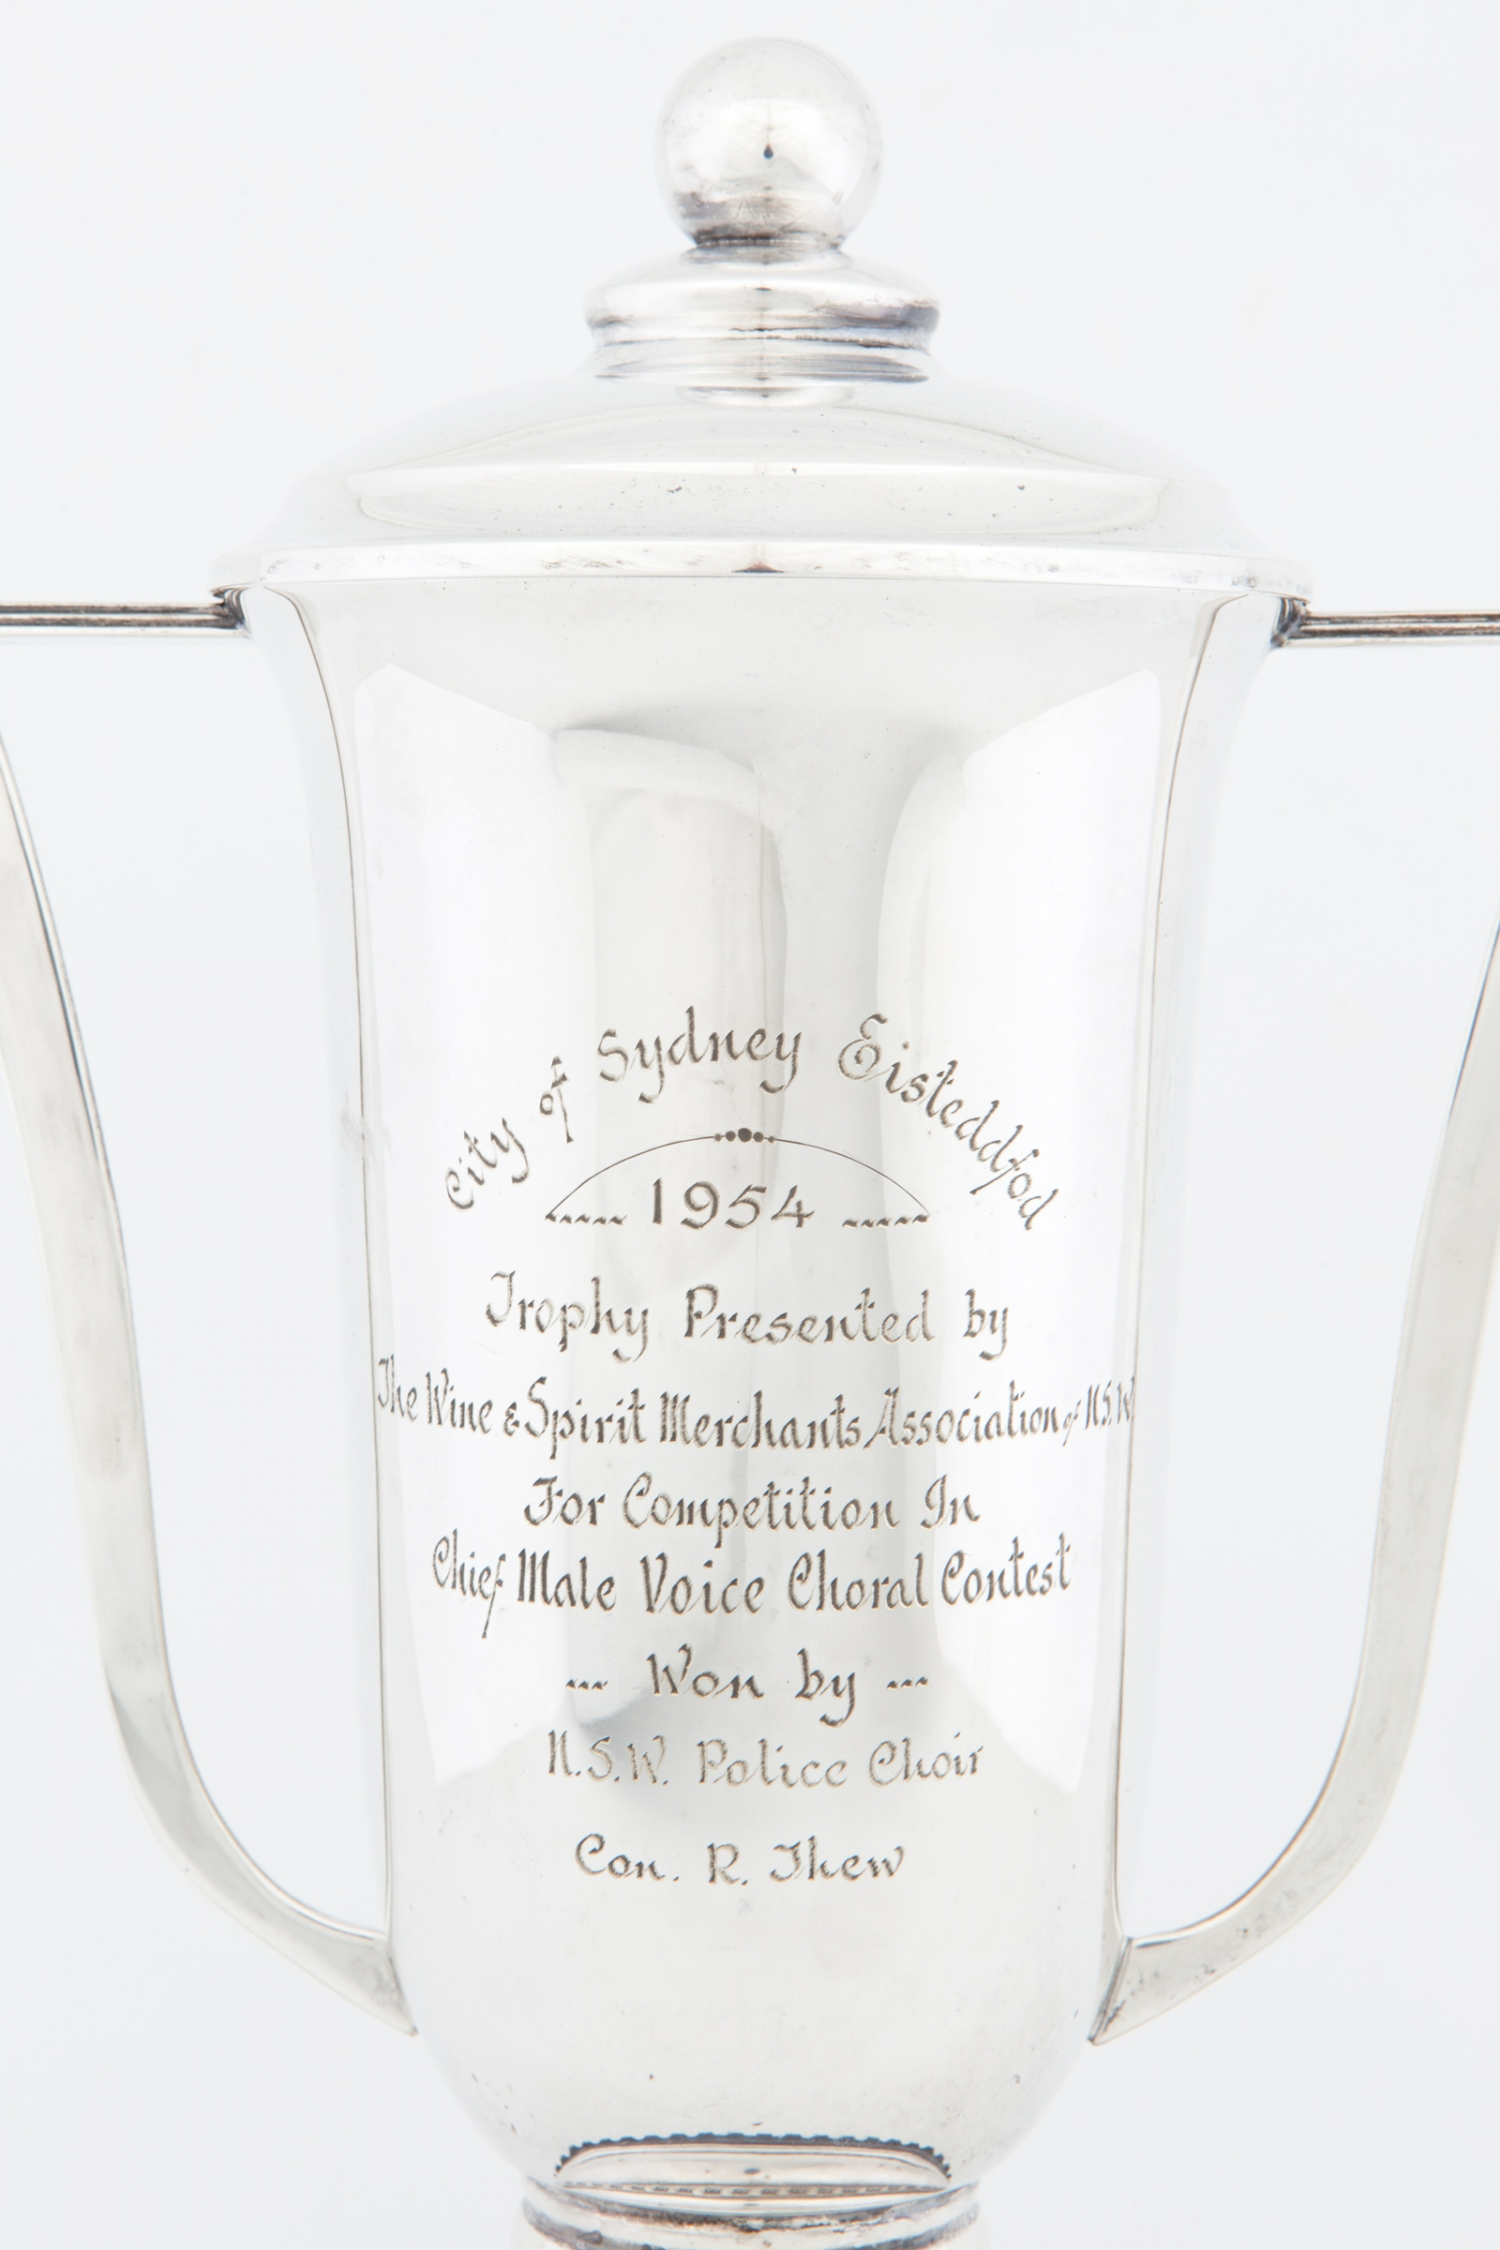 Trophy (detail) awarded to the NSW Police Choir at the City of Sydney Eisteddfod, 1954